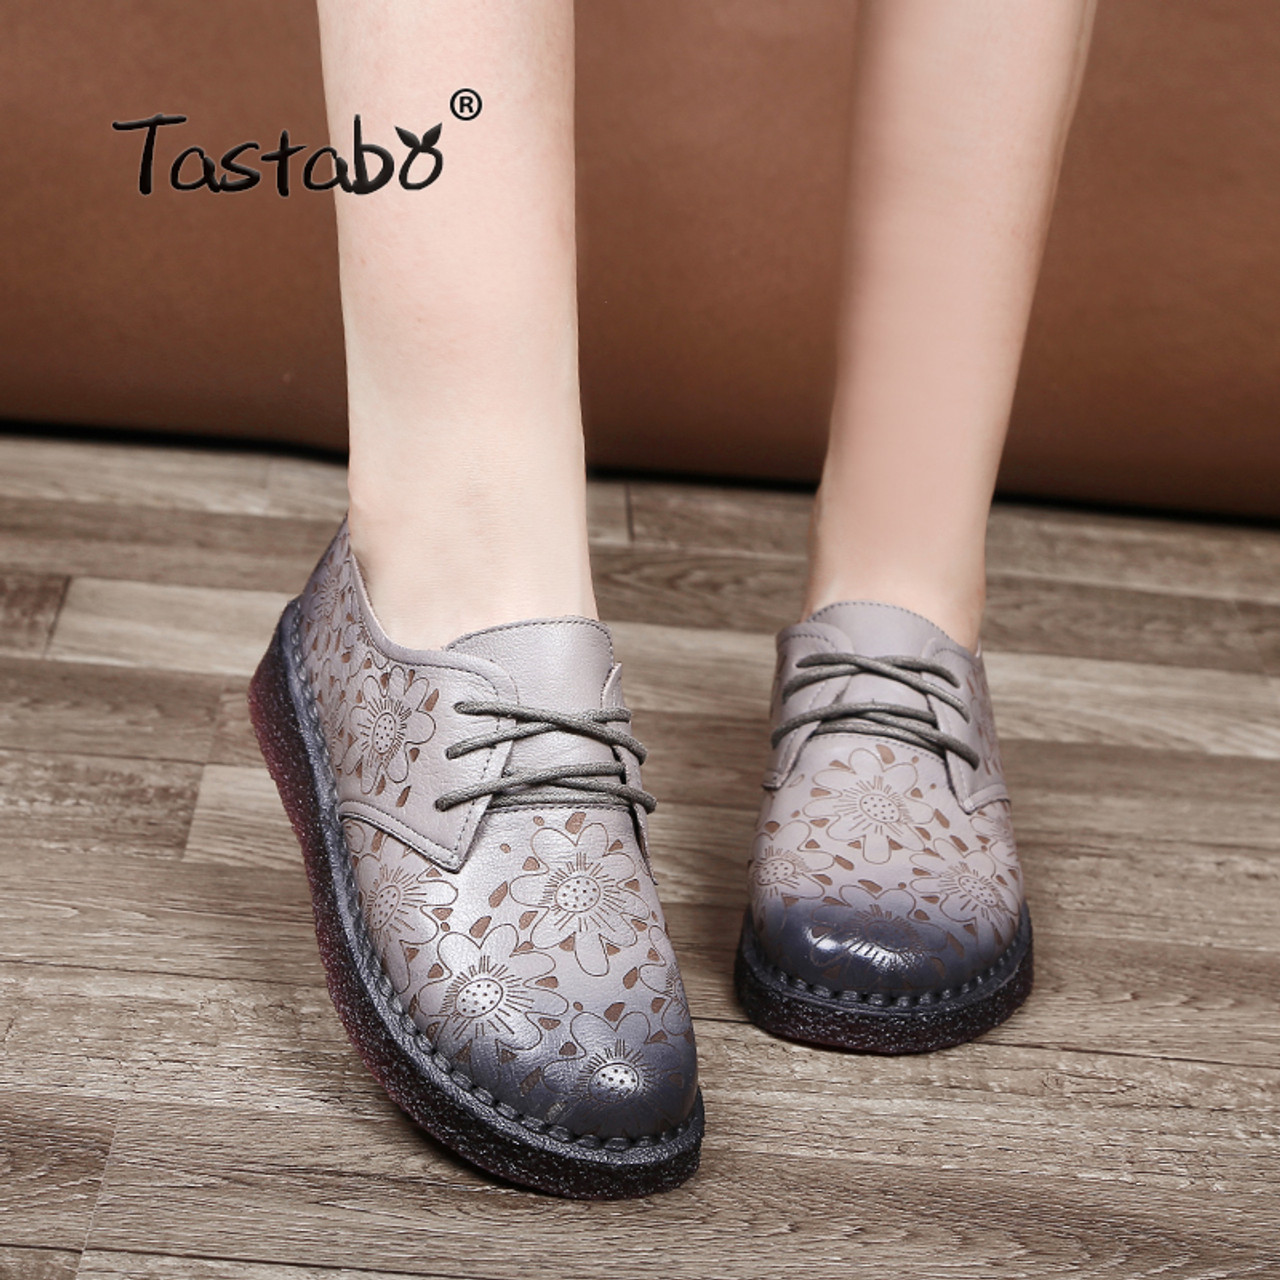 cc1ff1520a Tastabo Print Flower Flat Shoe Pregnant Women Shoe Mother Driving Shoe  Female Moccasins Women Flats Hand ...